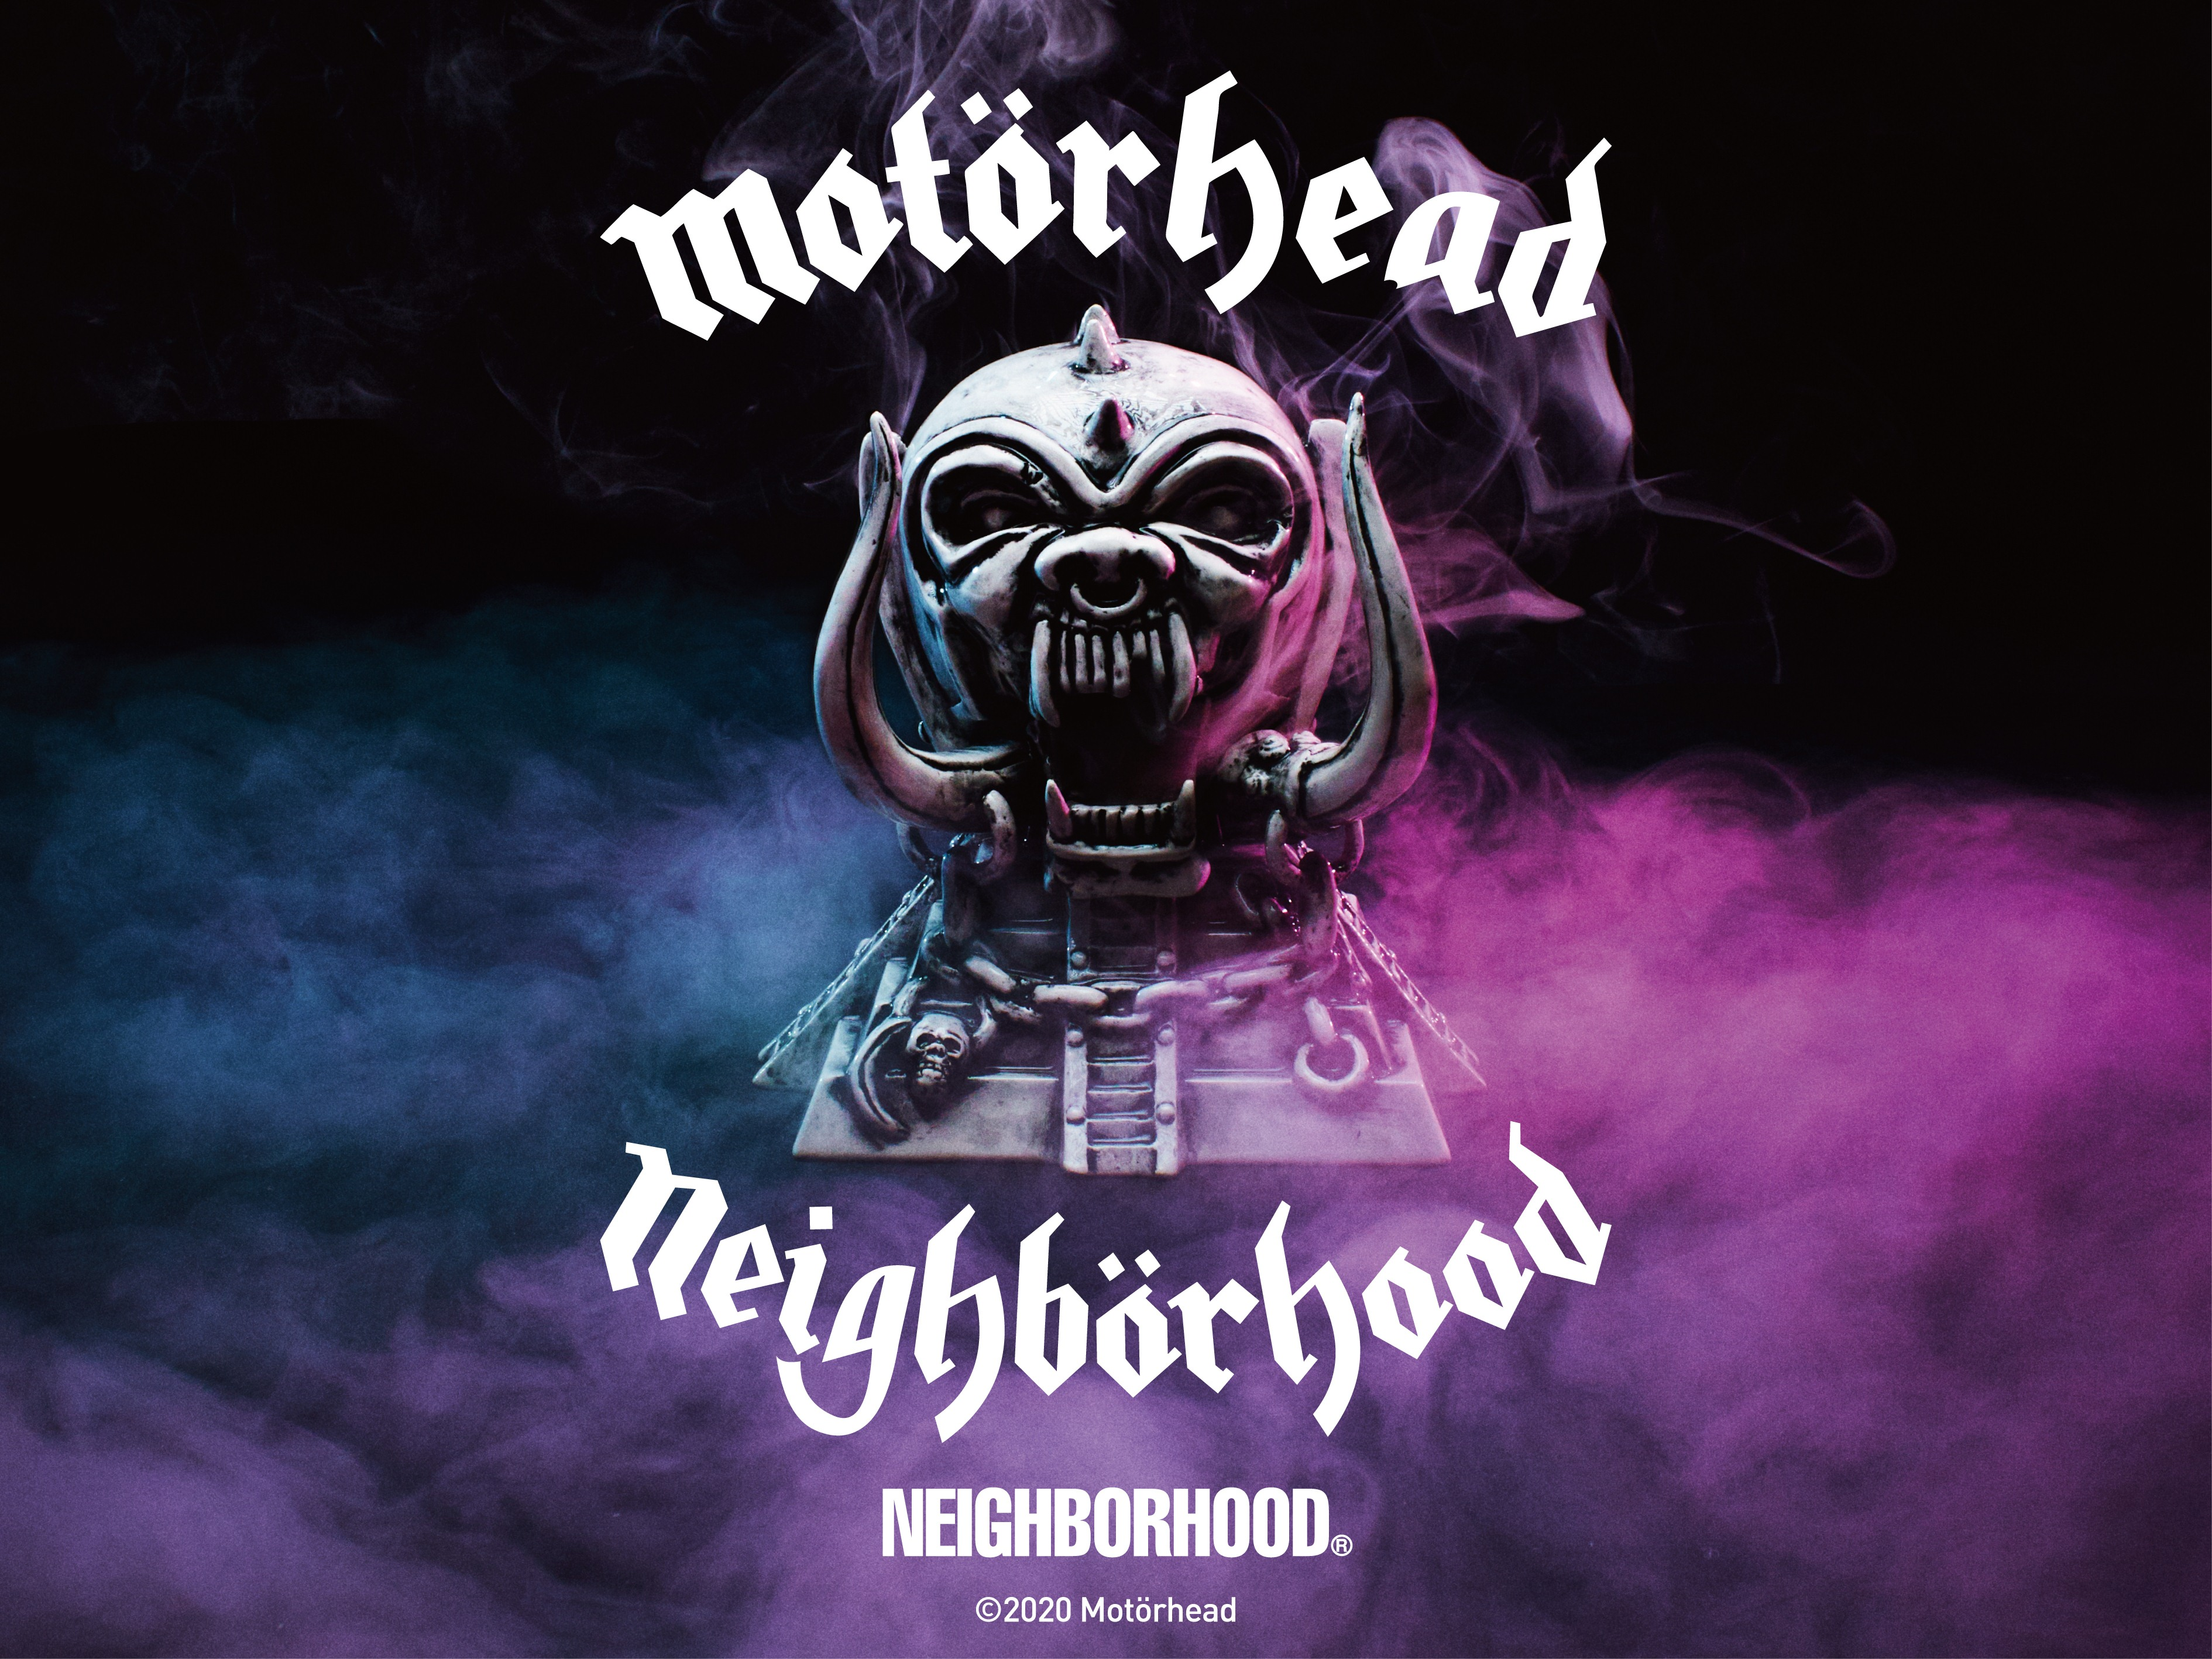 「NEIGHBORHOODxMotörhead」発売のお知らせ